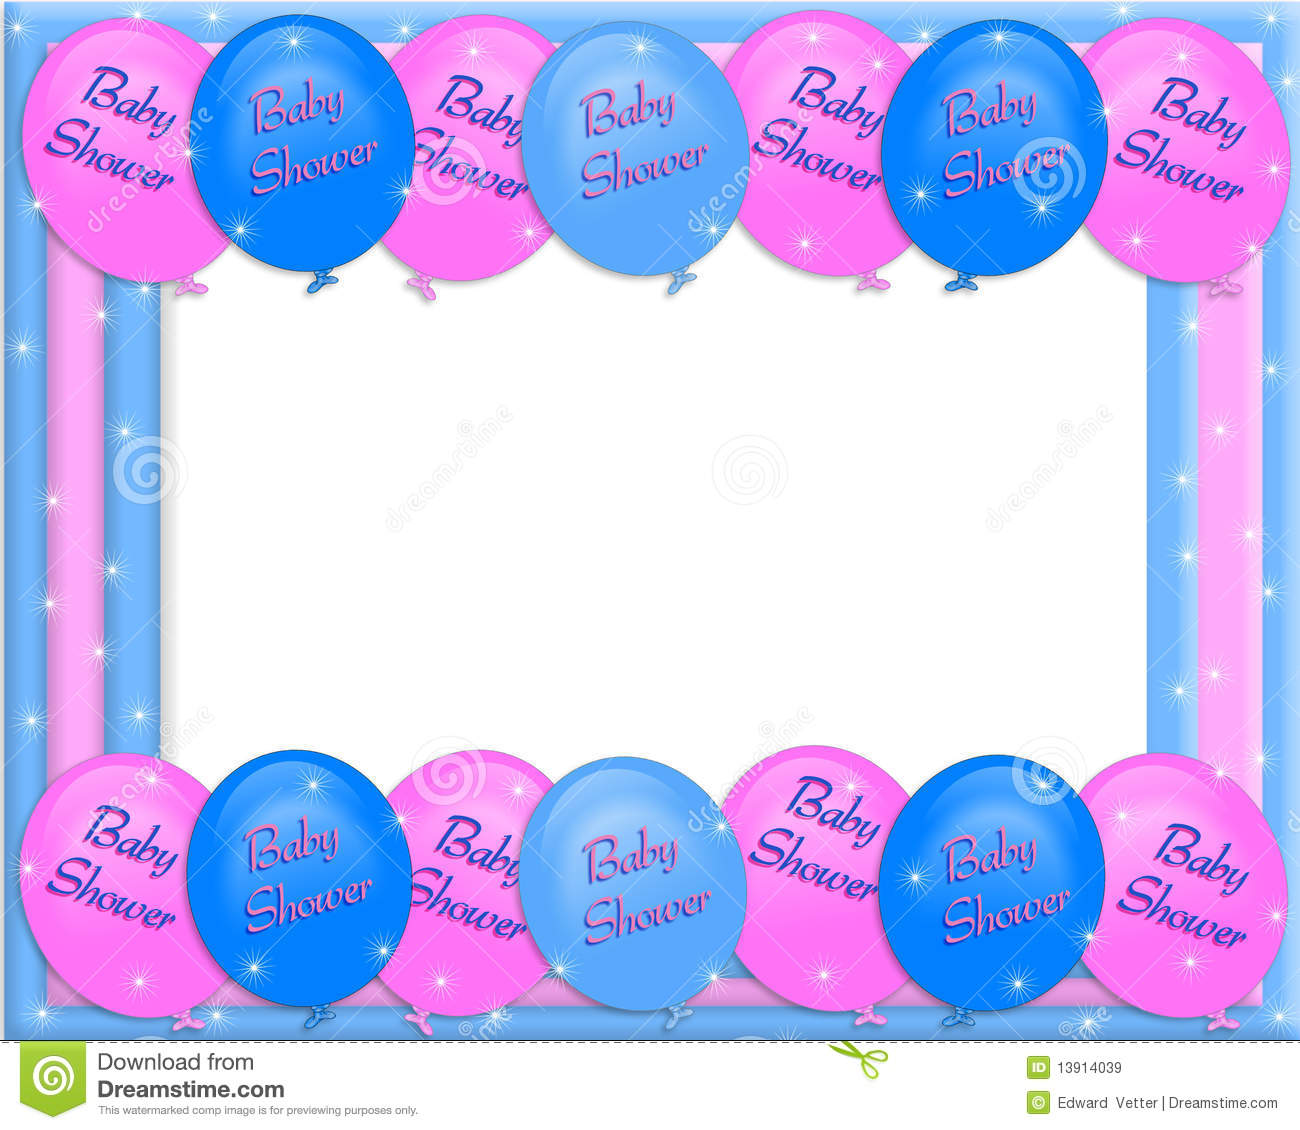 Baby shower borders clip art picture royalty free stock Baby shower clip art border - ClipartFest picture royalty free stock